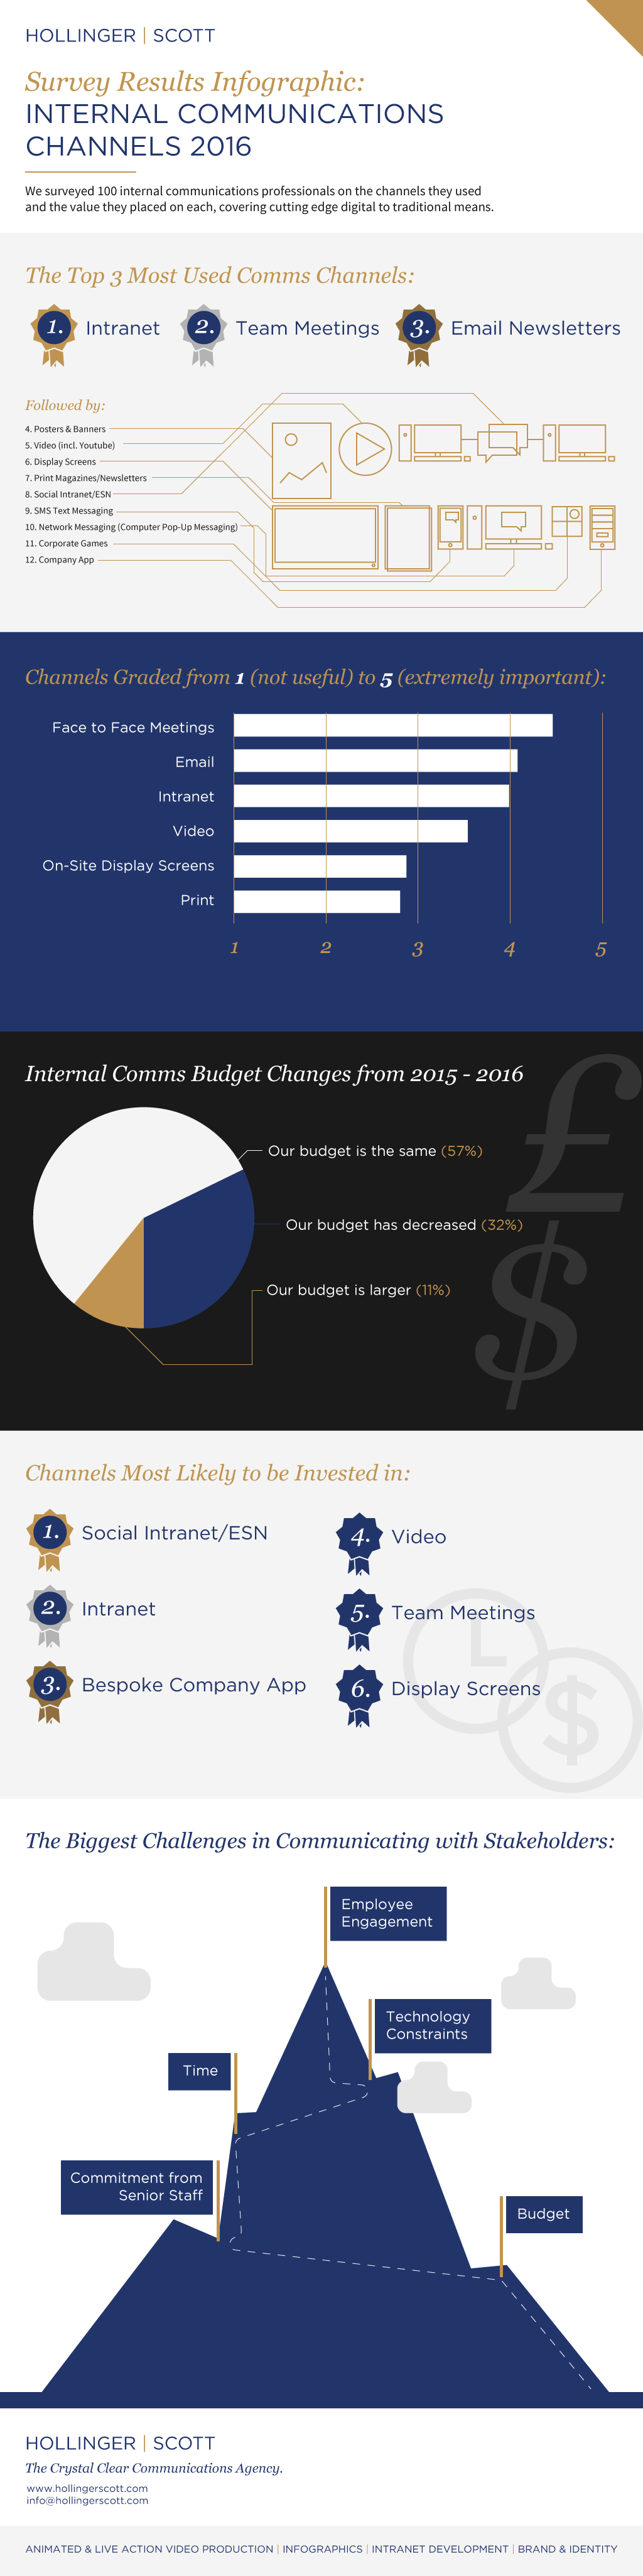 COMMS_CHANNELS_INFOGRAPHIC_V01